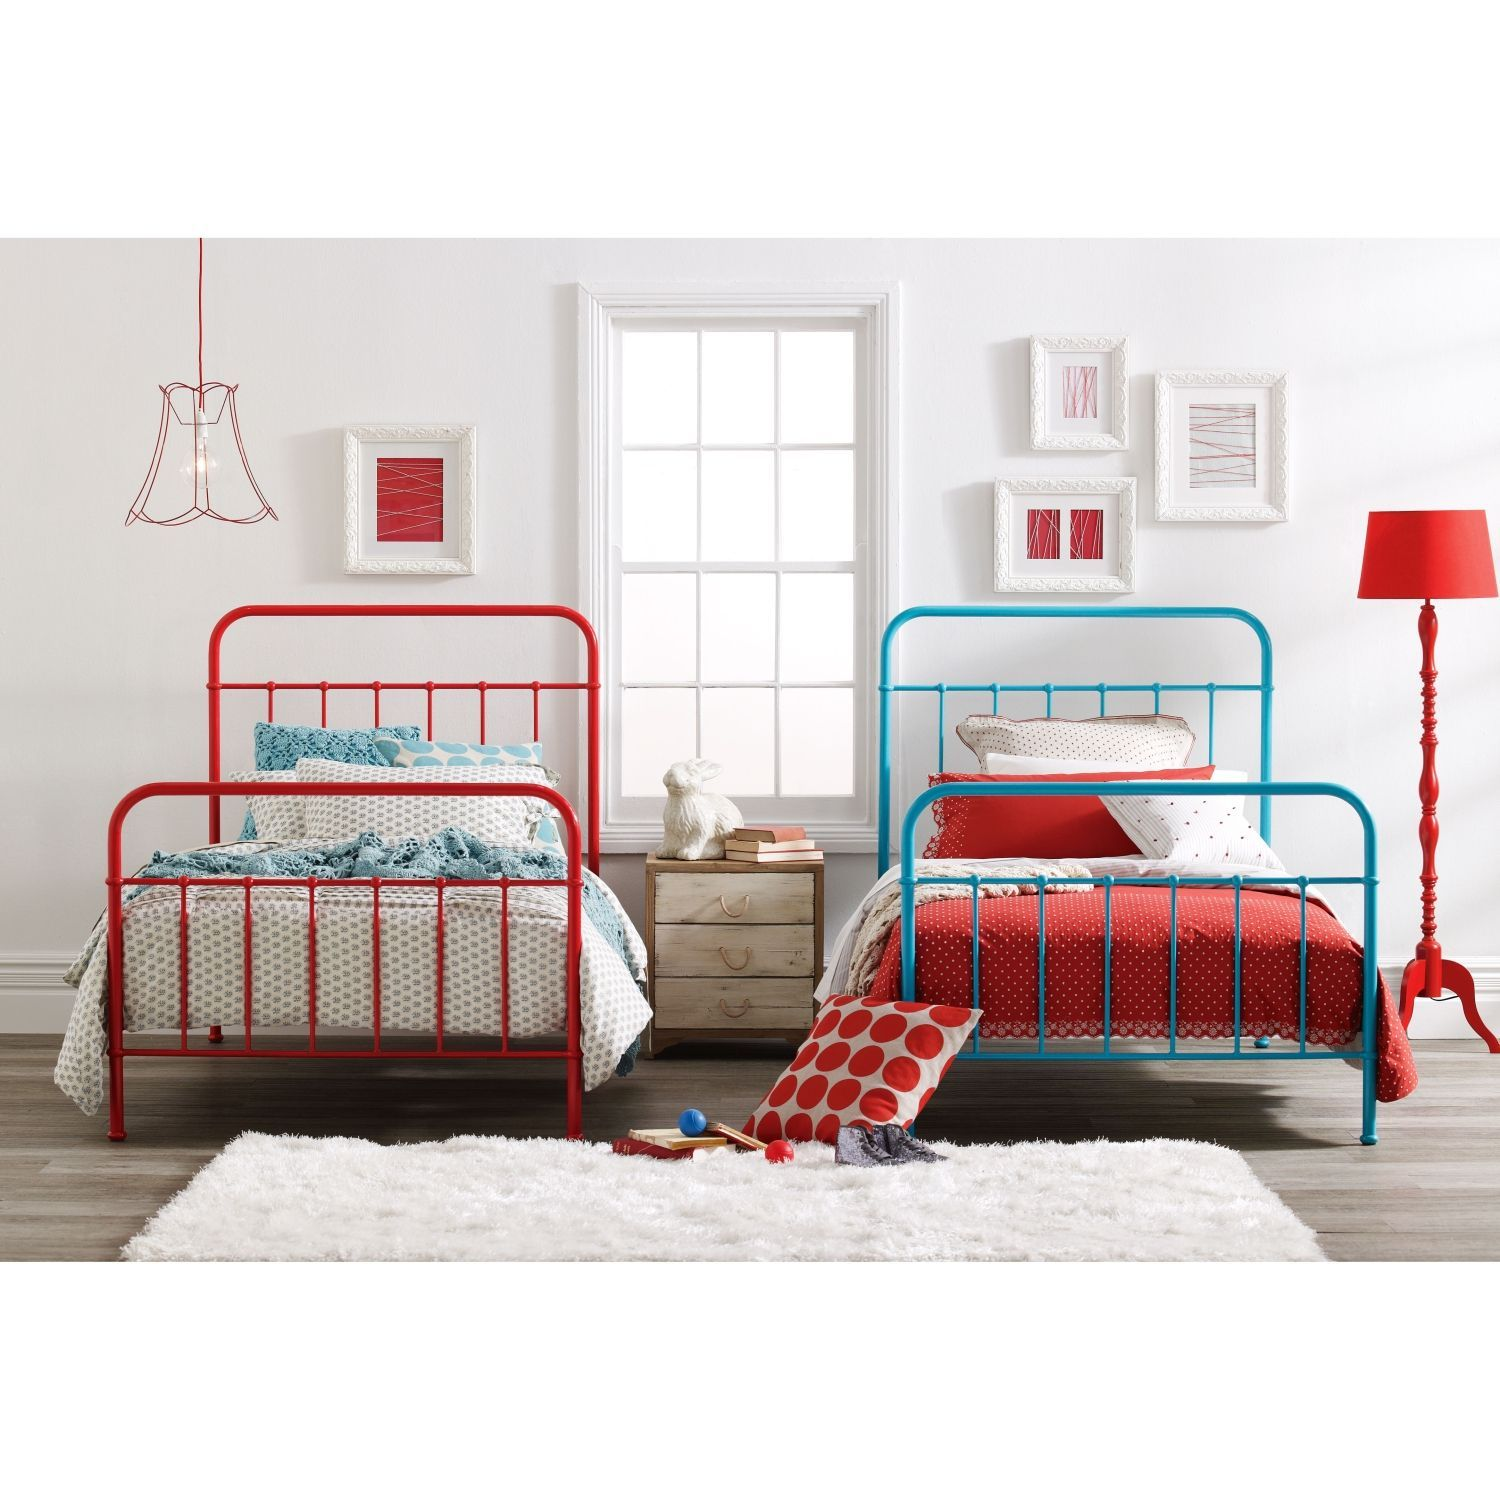 Kids Metal Beds Vintage Inspired Kidsu0027 Rooms Domayne Red Bedding Single Bed Frame Single Metal Bed Frame